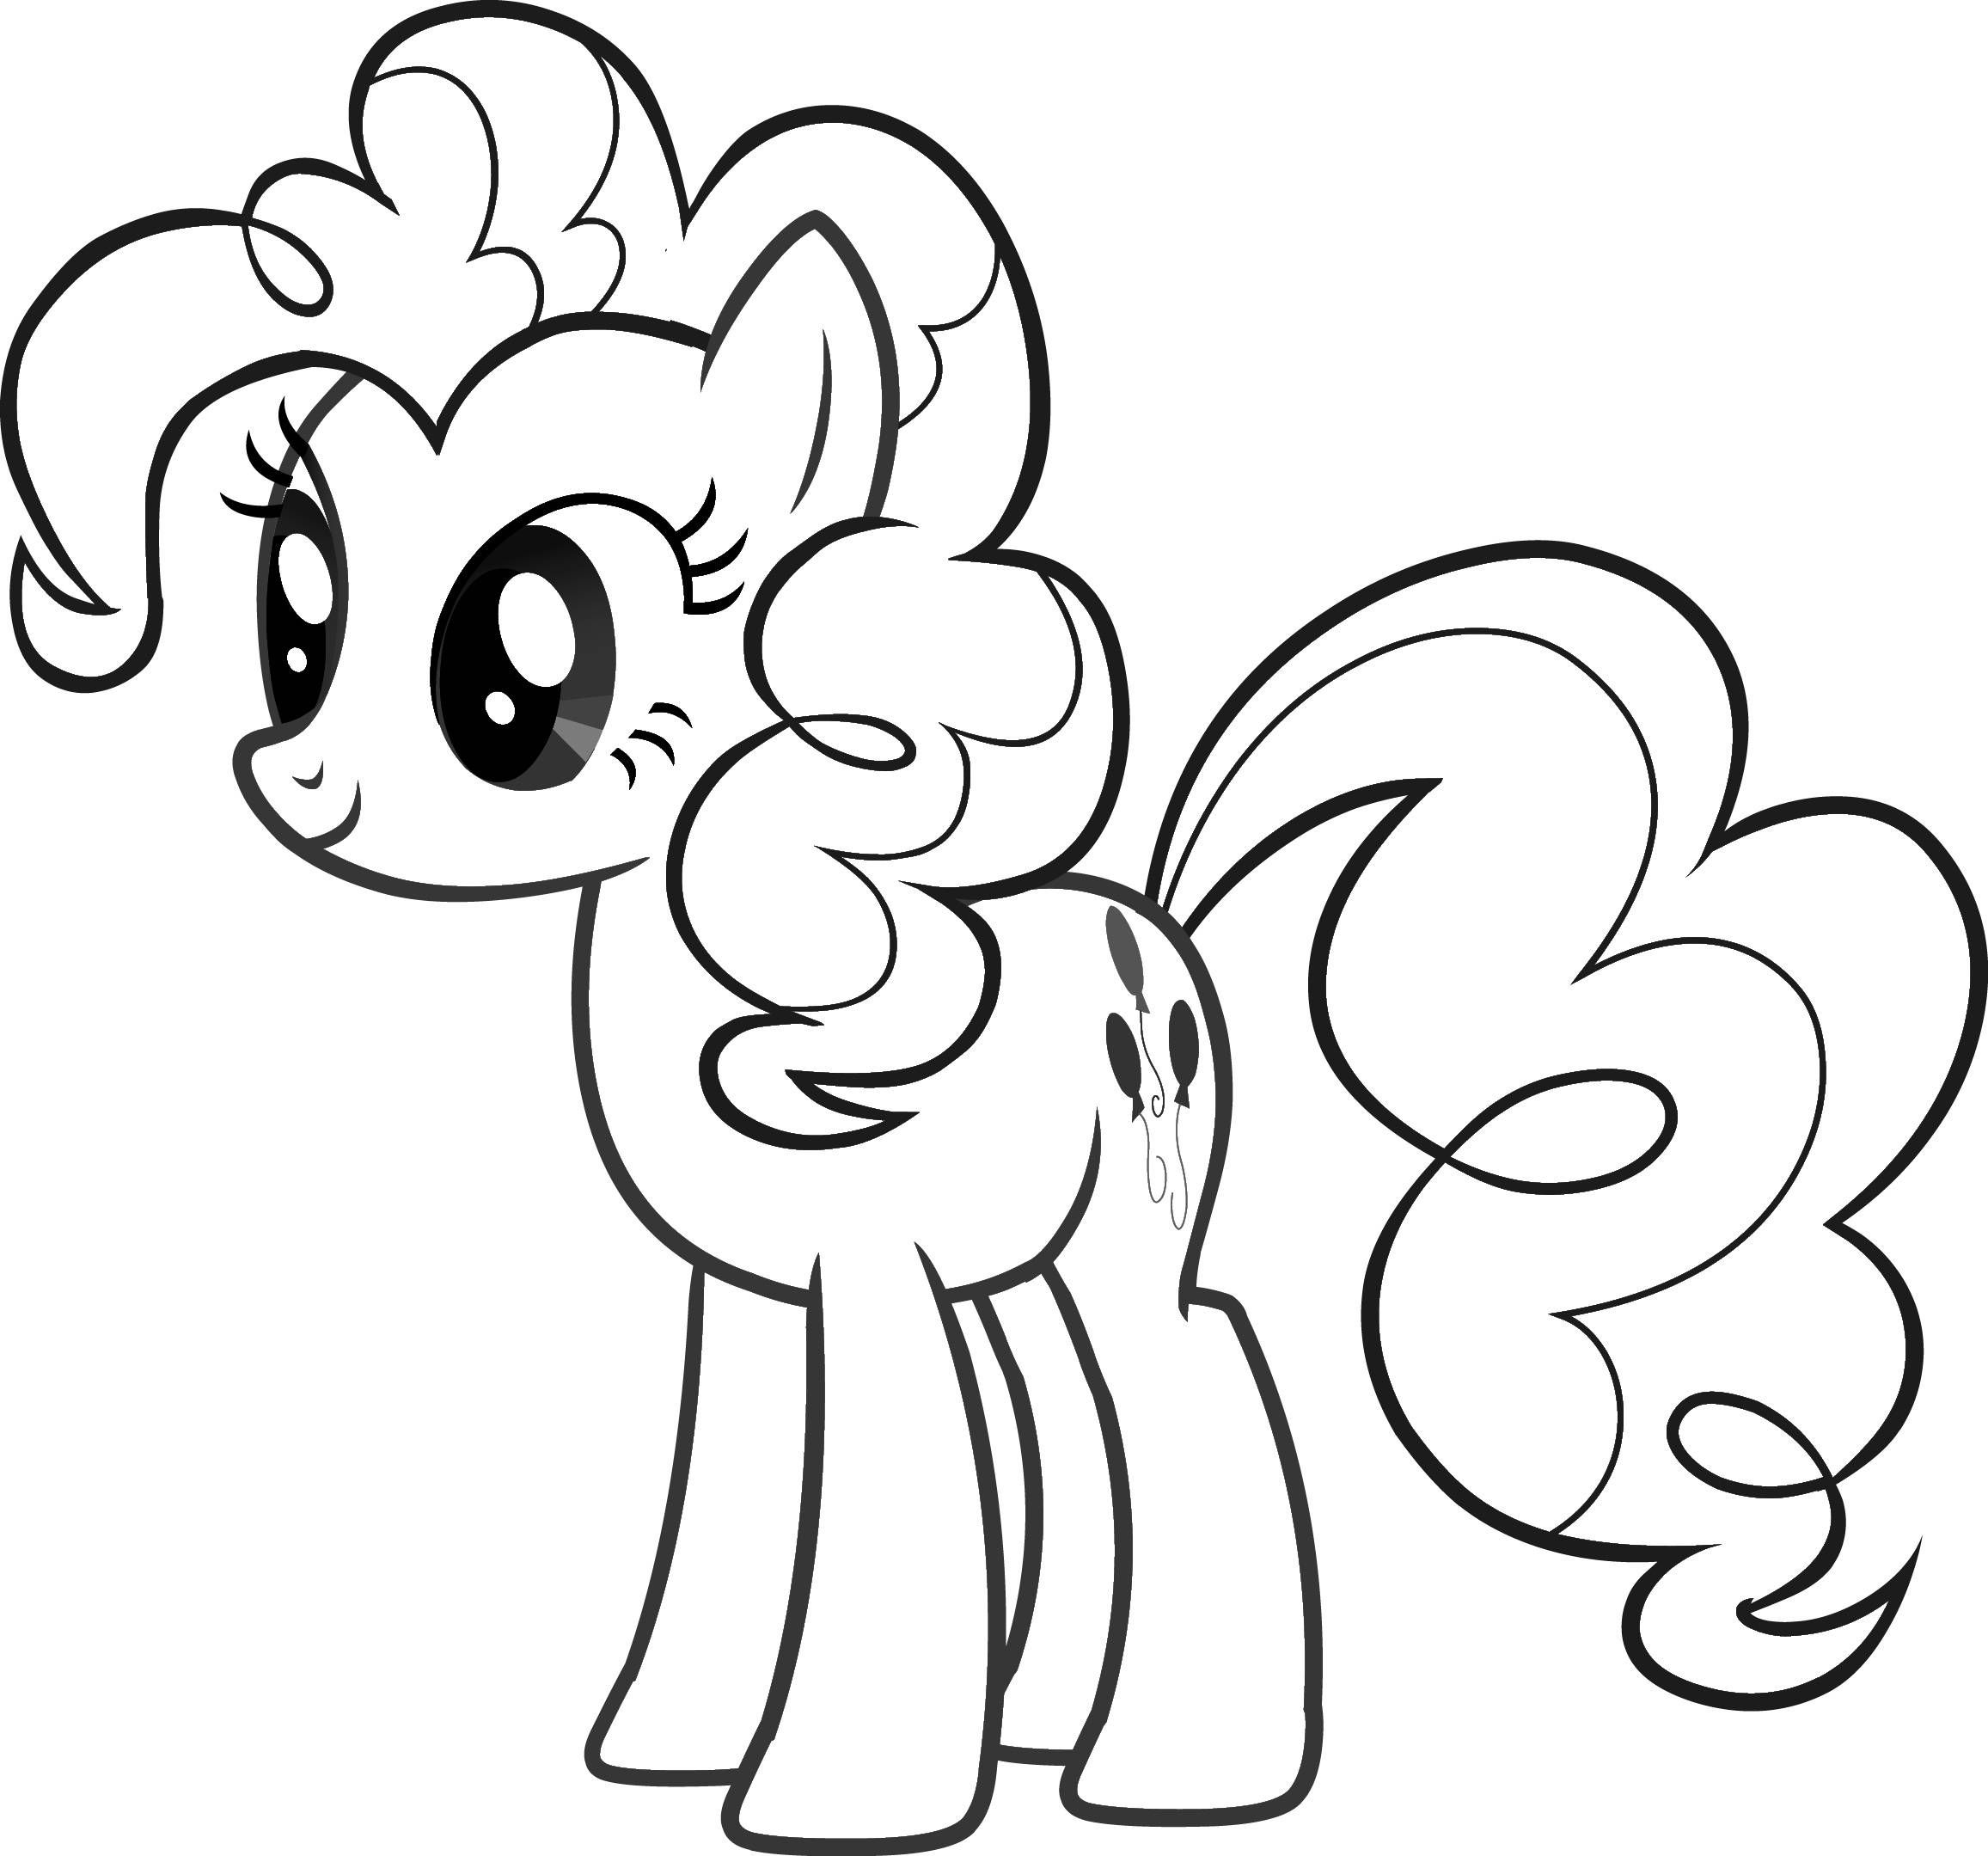 My Little Pony Coloring Pages | Pony, Google search and Google